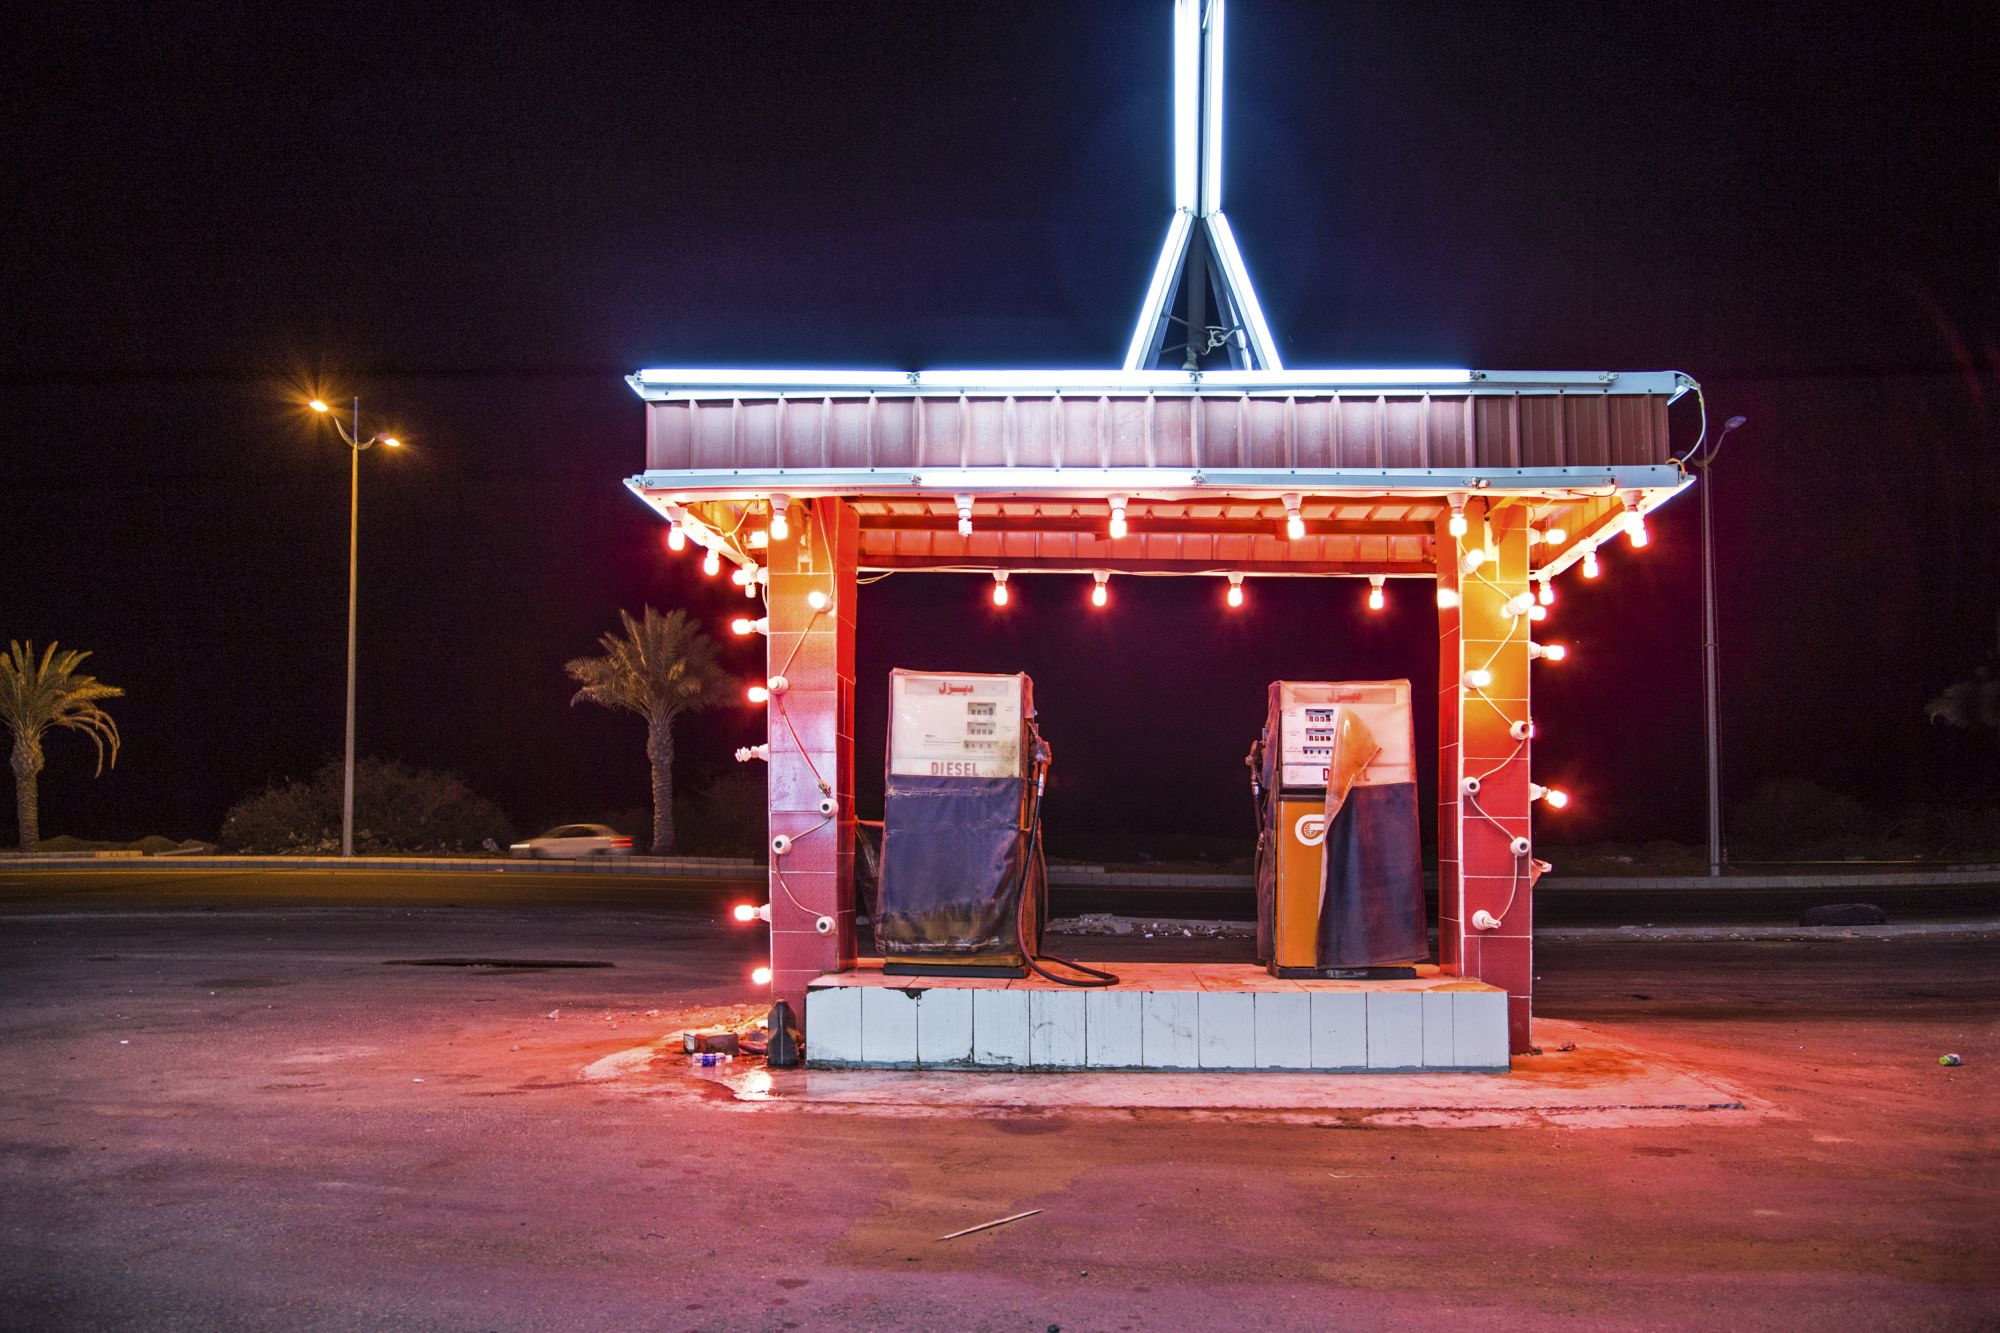 Ahmed Mater (Saudi, born 1979). Gas Station Leadlight, 2013. C-print, 60 x 90 in. (152.4 x 228.6 cm). Courtesy of the artist and GALLERIA CONTINUA, San Gimignano / Beijing / Les Moulins / Habana. © Ahmed Mater